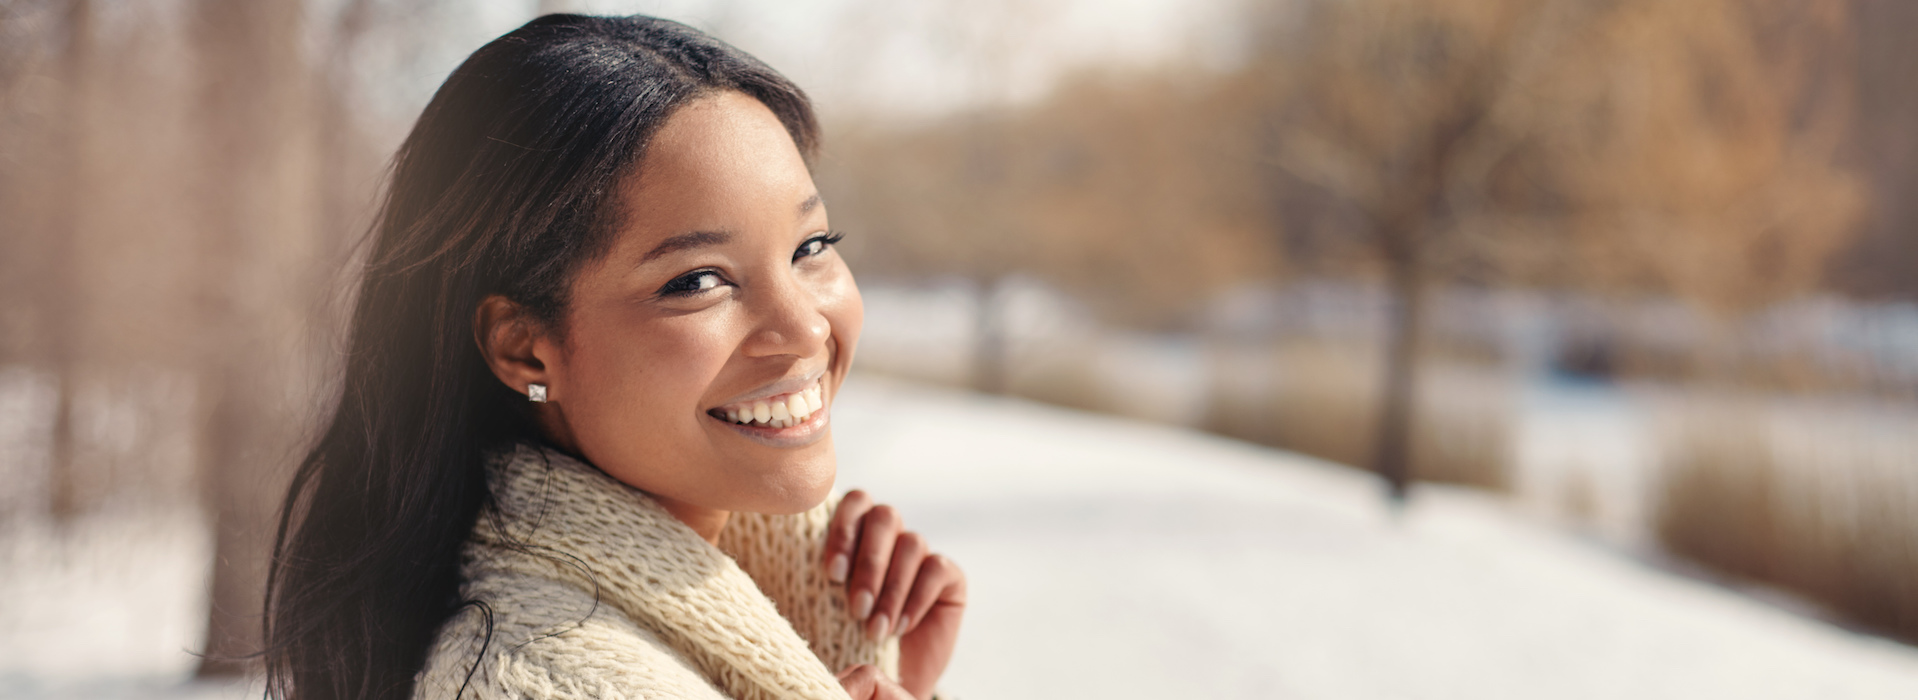 7 Tips for Healthier Skin This Winter